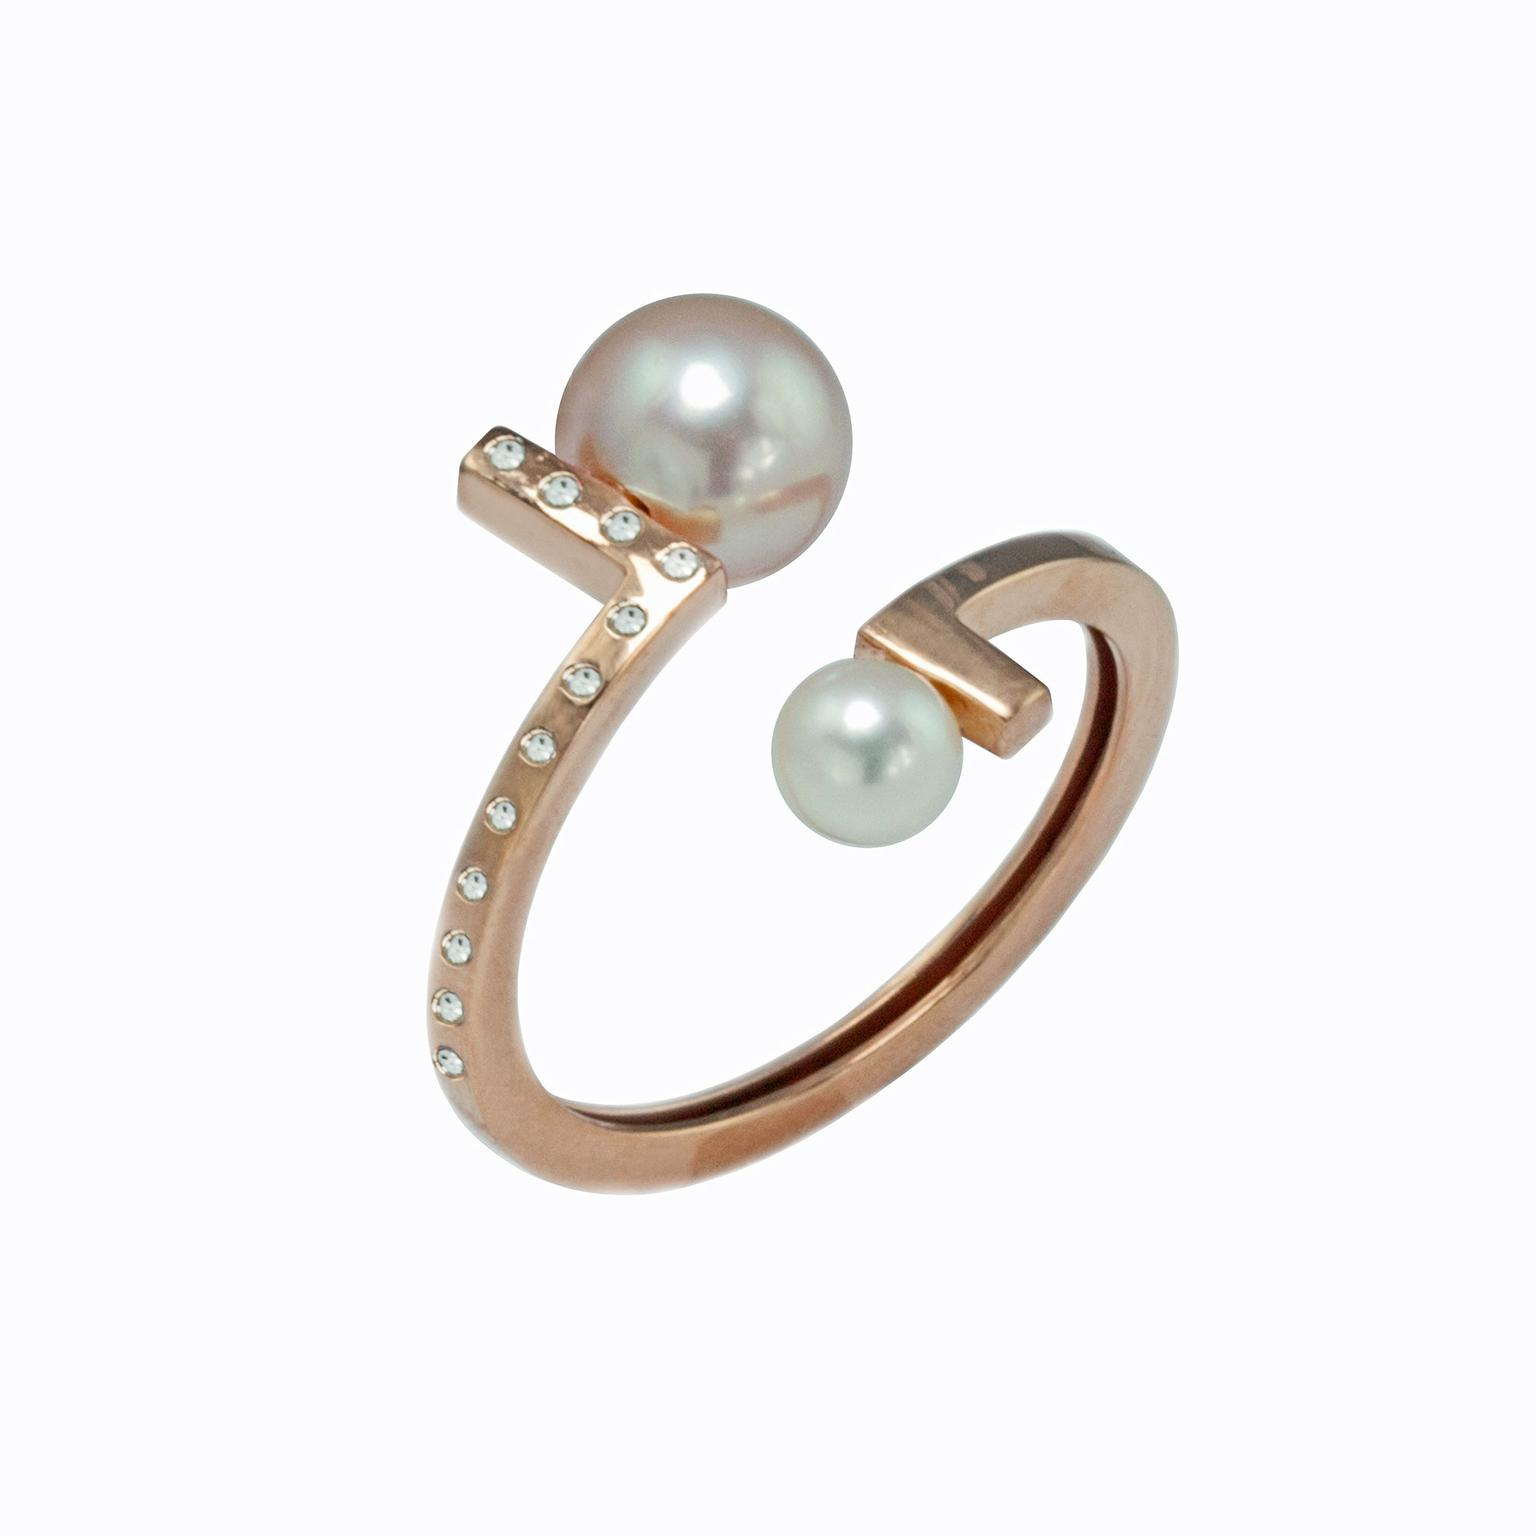 Kattri Asymmetry collection rose gold ring